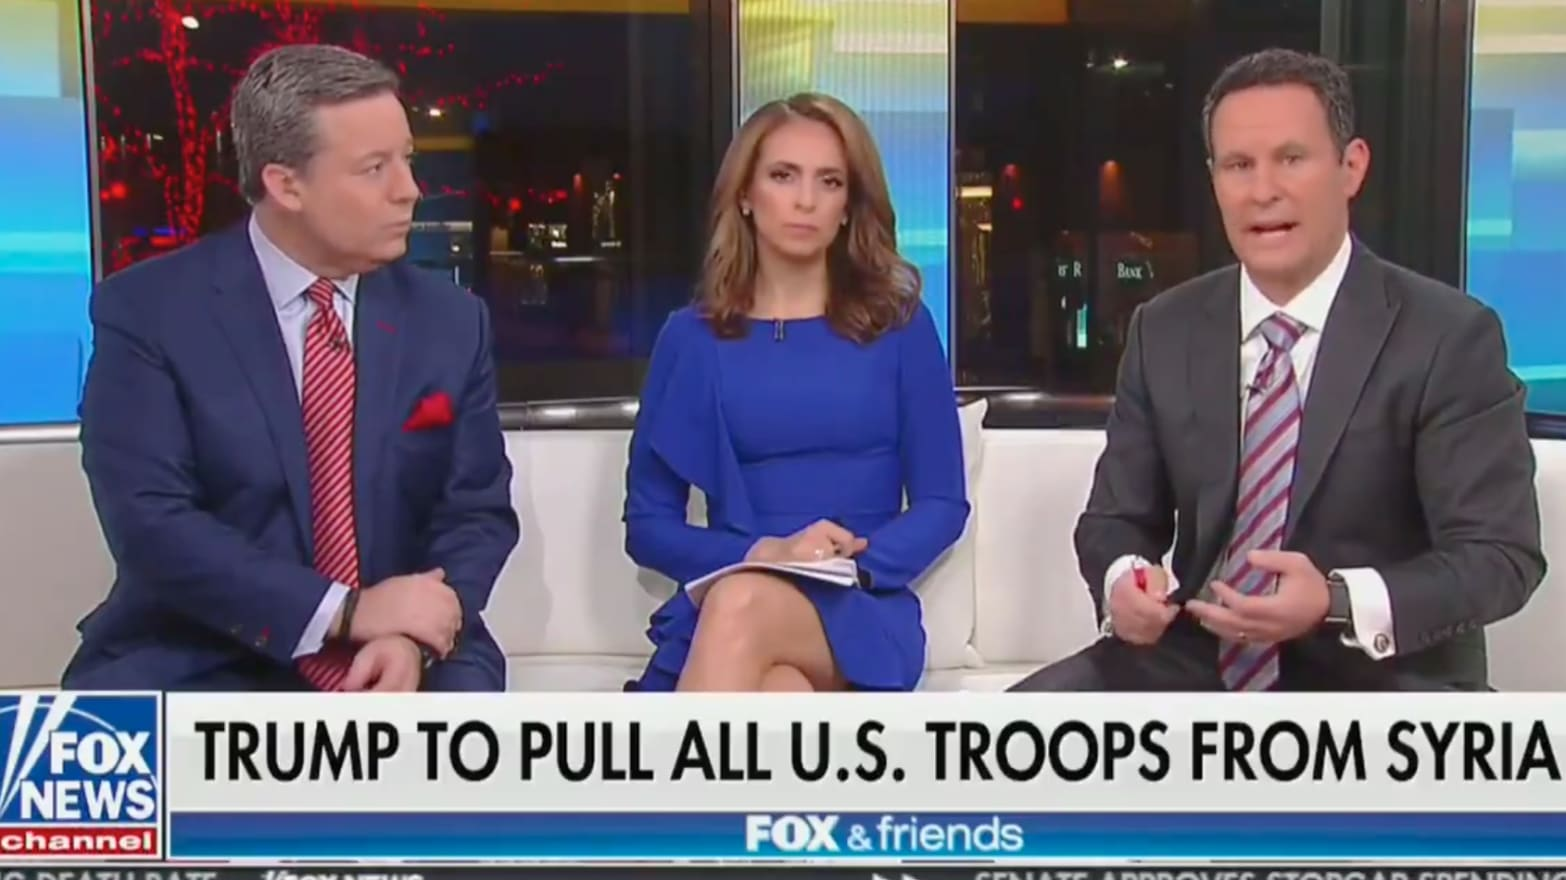 'Fox & Friends' Slams Trump on Syria Withdrawal: Only a Child Would Think ISIS Is Defeated